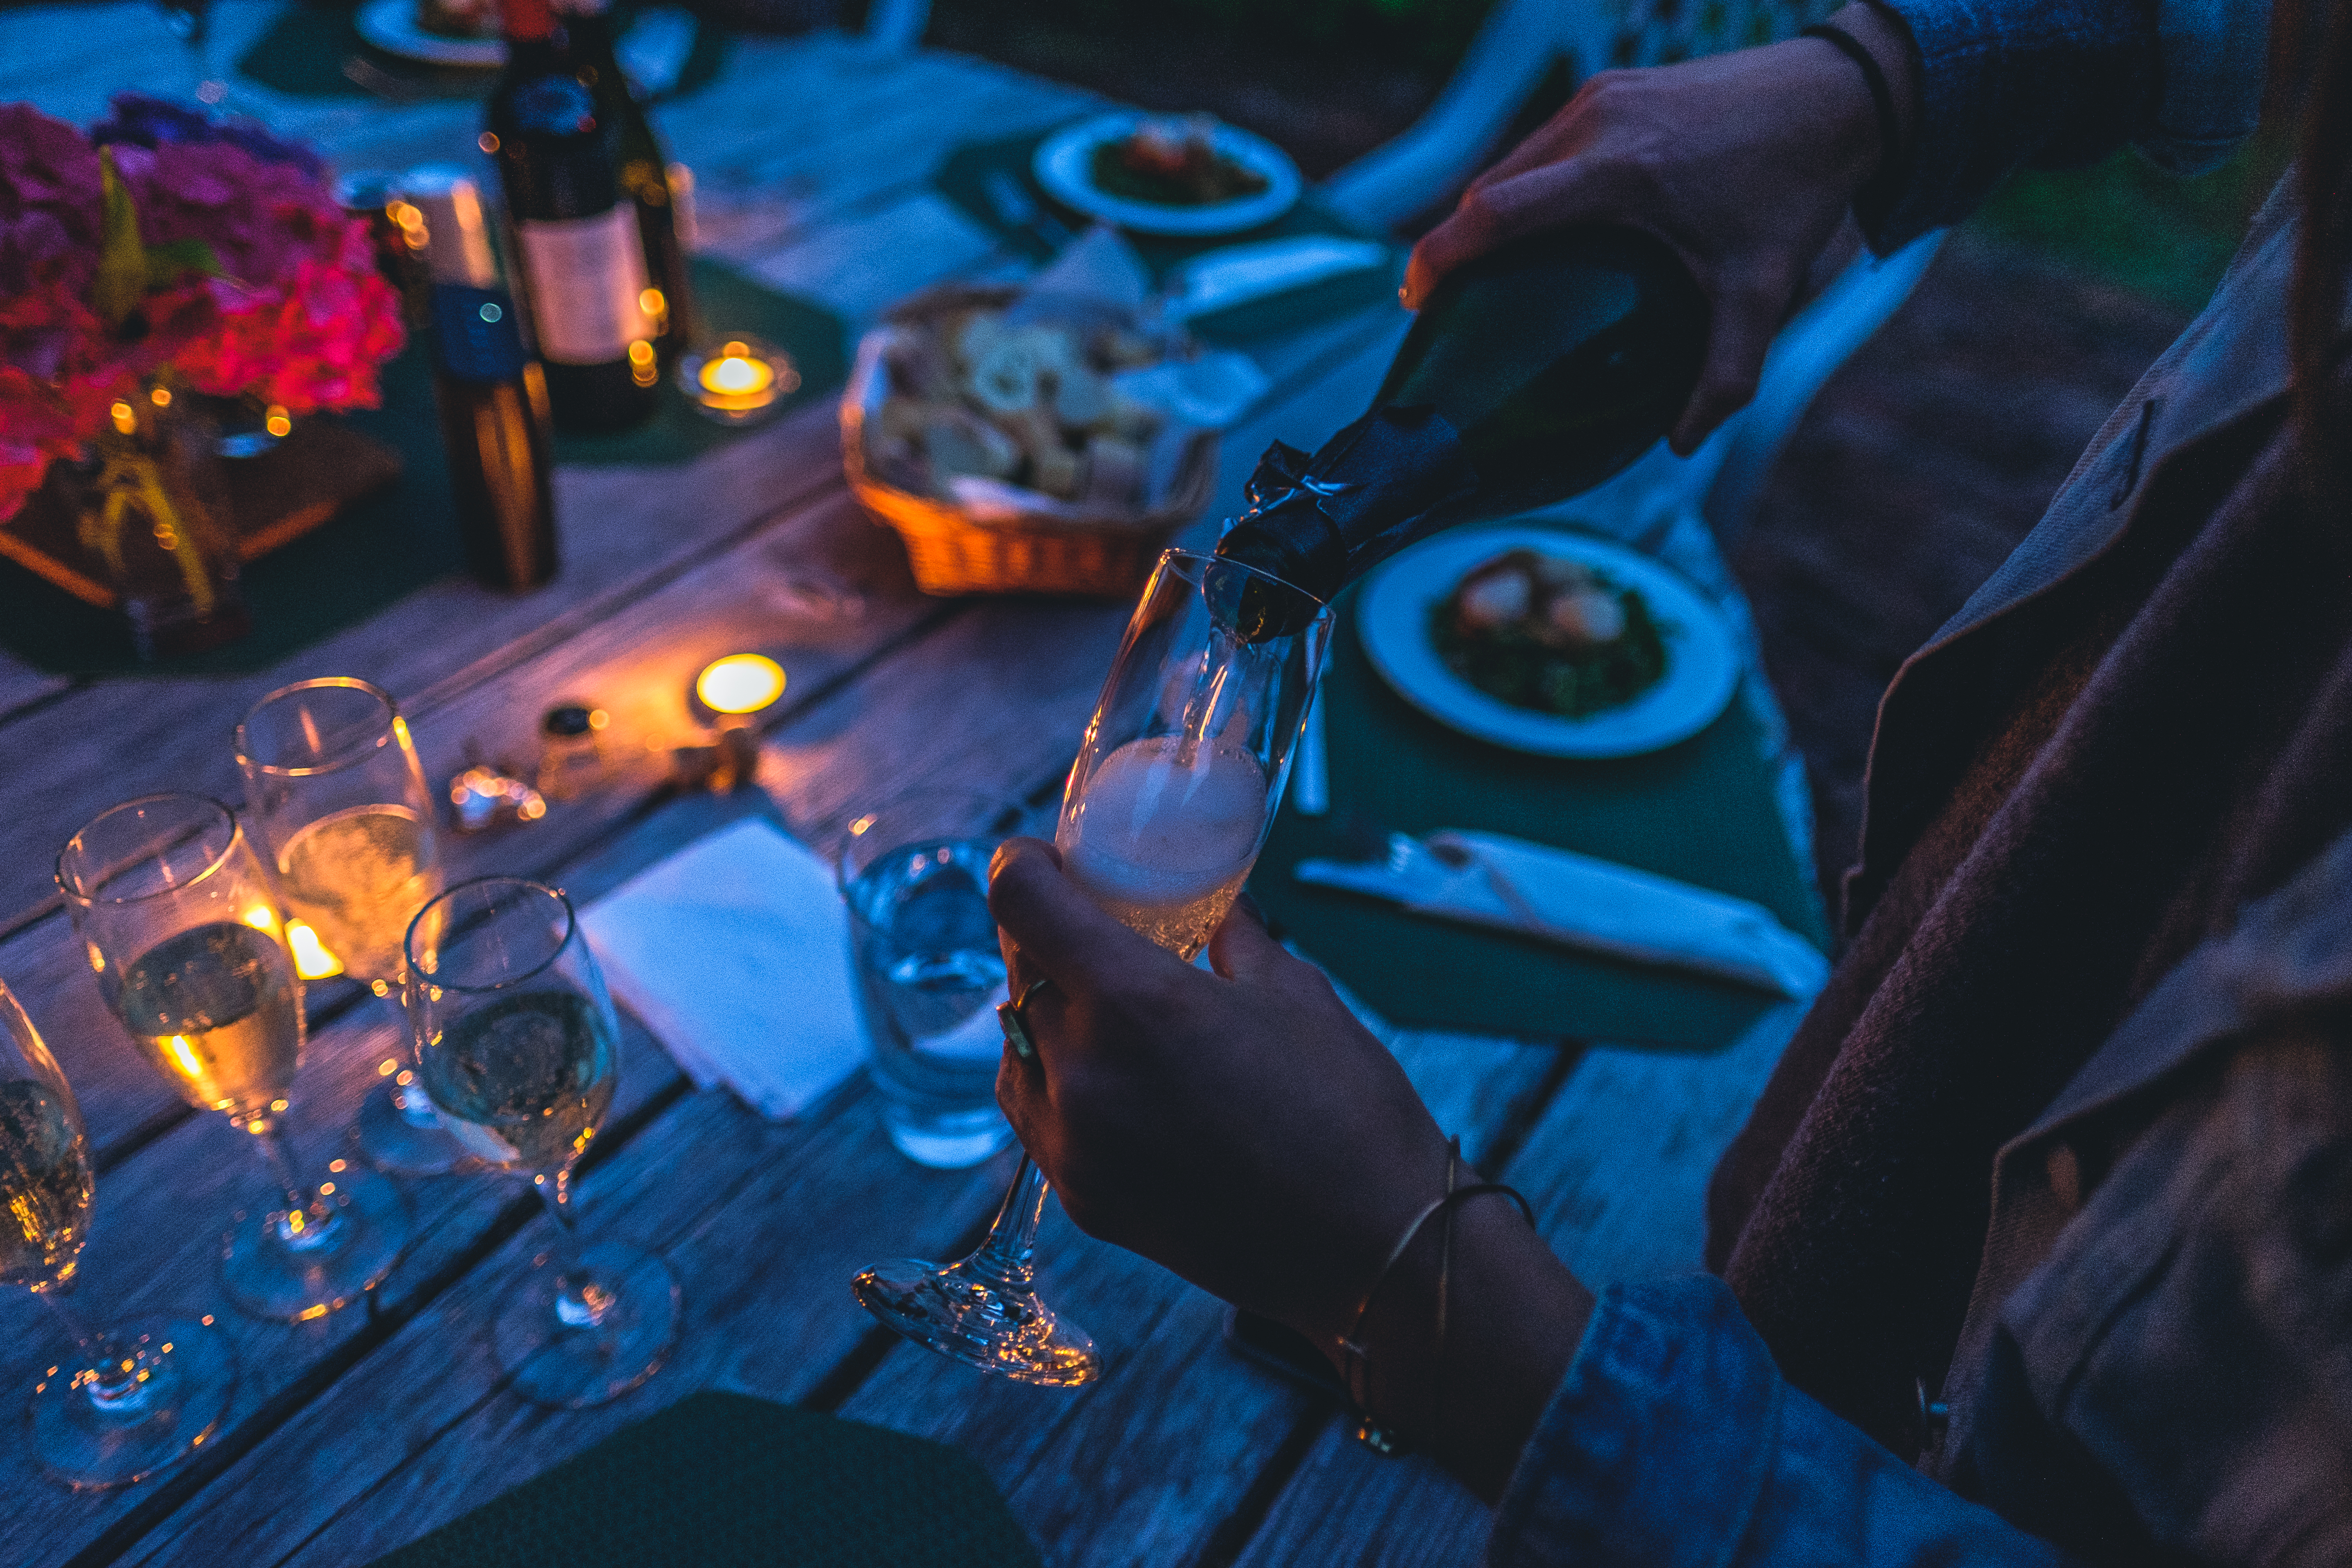 Outdoor Dinner Party? Seven Ways to Keep Bugs Away